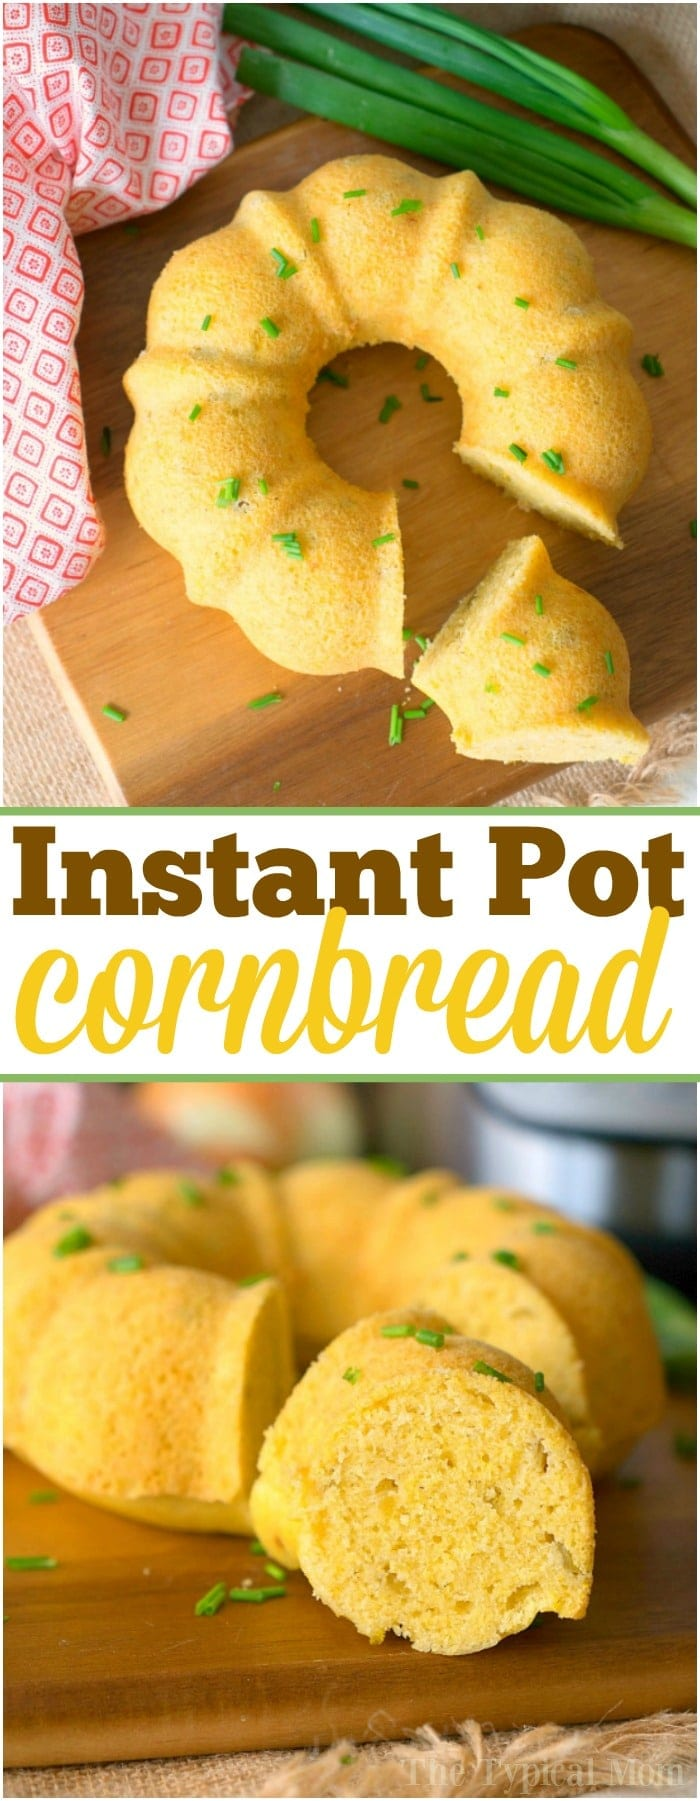 This pressure cooker cornbread is the perfect side dish for any holiday and perfect served with chili! An easy homemade cornbread recipe cooked right in your Instant Pot and comes out so pretty using this bundt pan. Add some chiles and even jalapenos and enjoy your favorite bread in no time at all. #pressurecooker #instantpot #cornbread #easy #quick #homemade #bundtcake #sidedish #easter #thanksgiving #christmas #chili